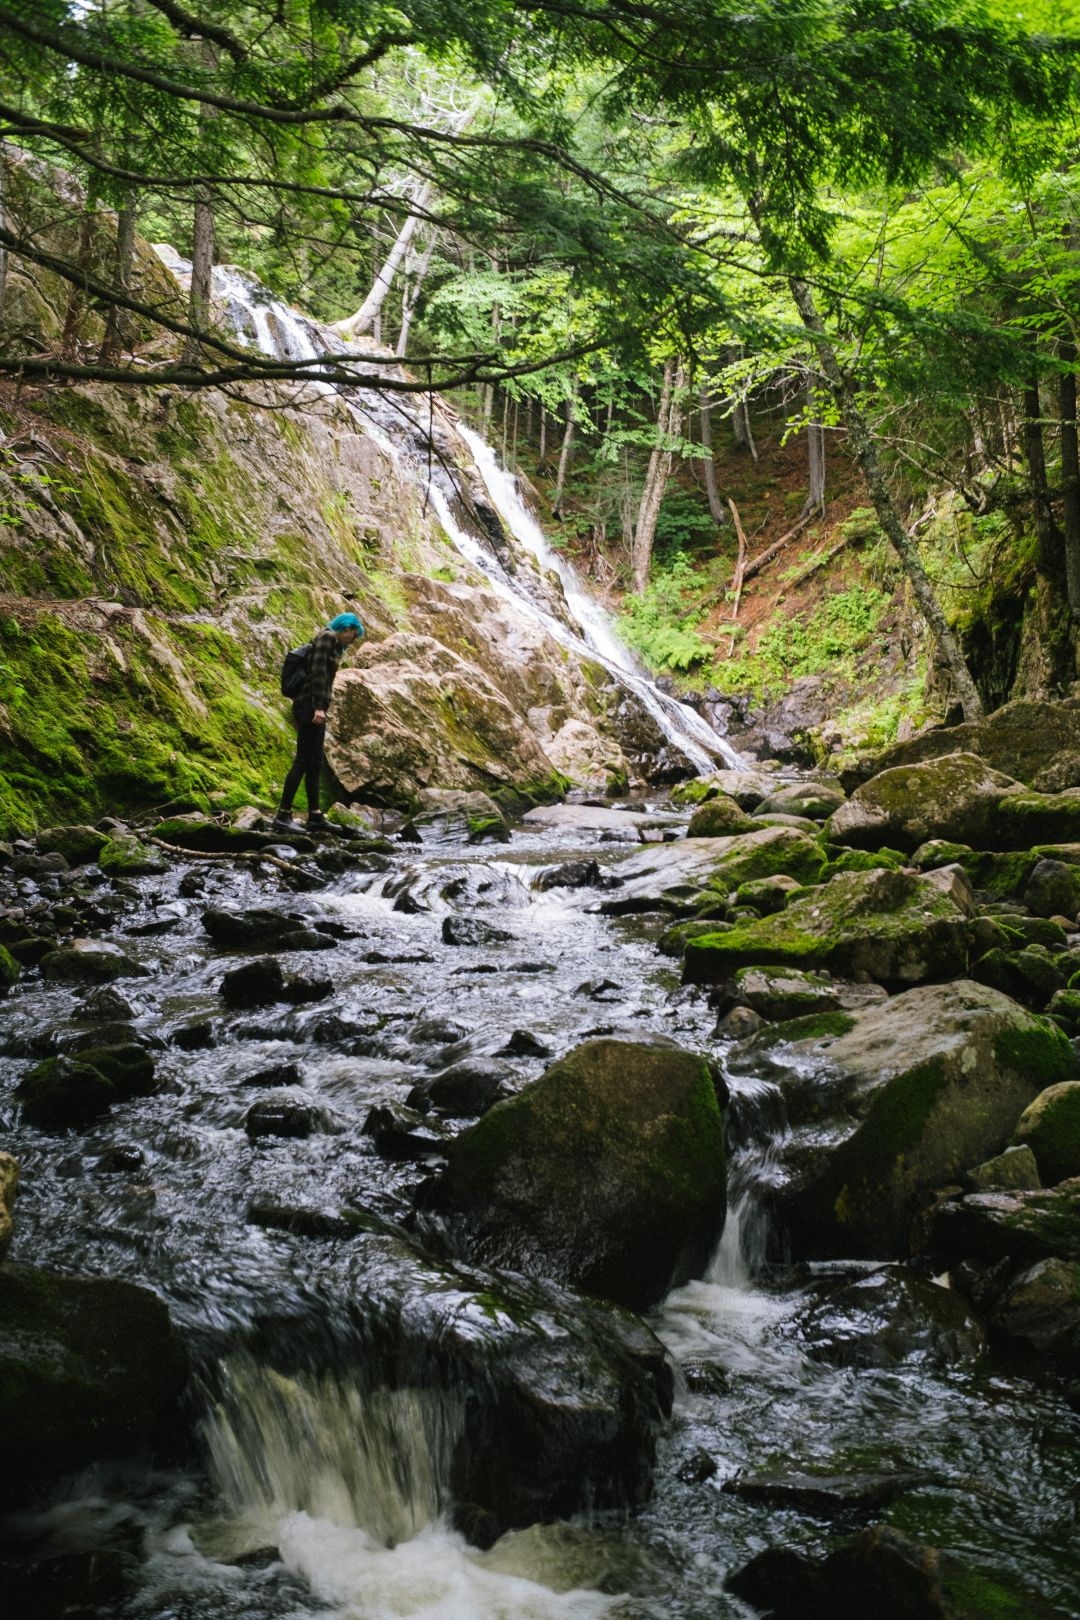 A photo depicting Exploring Moss Glen Kingston